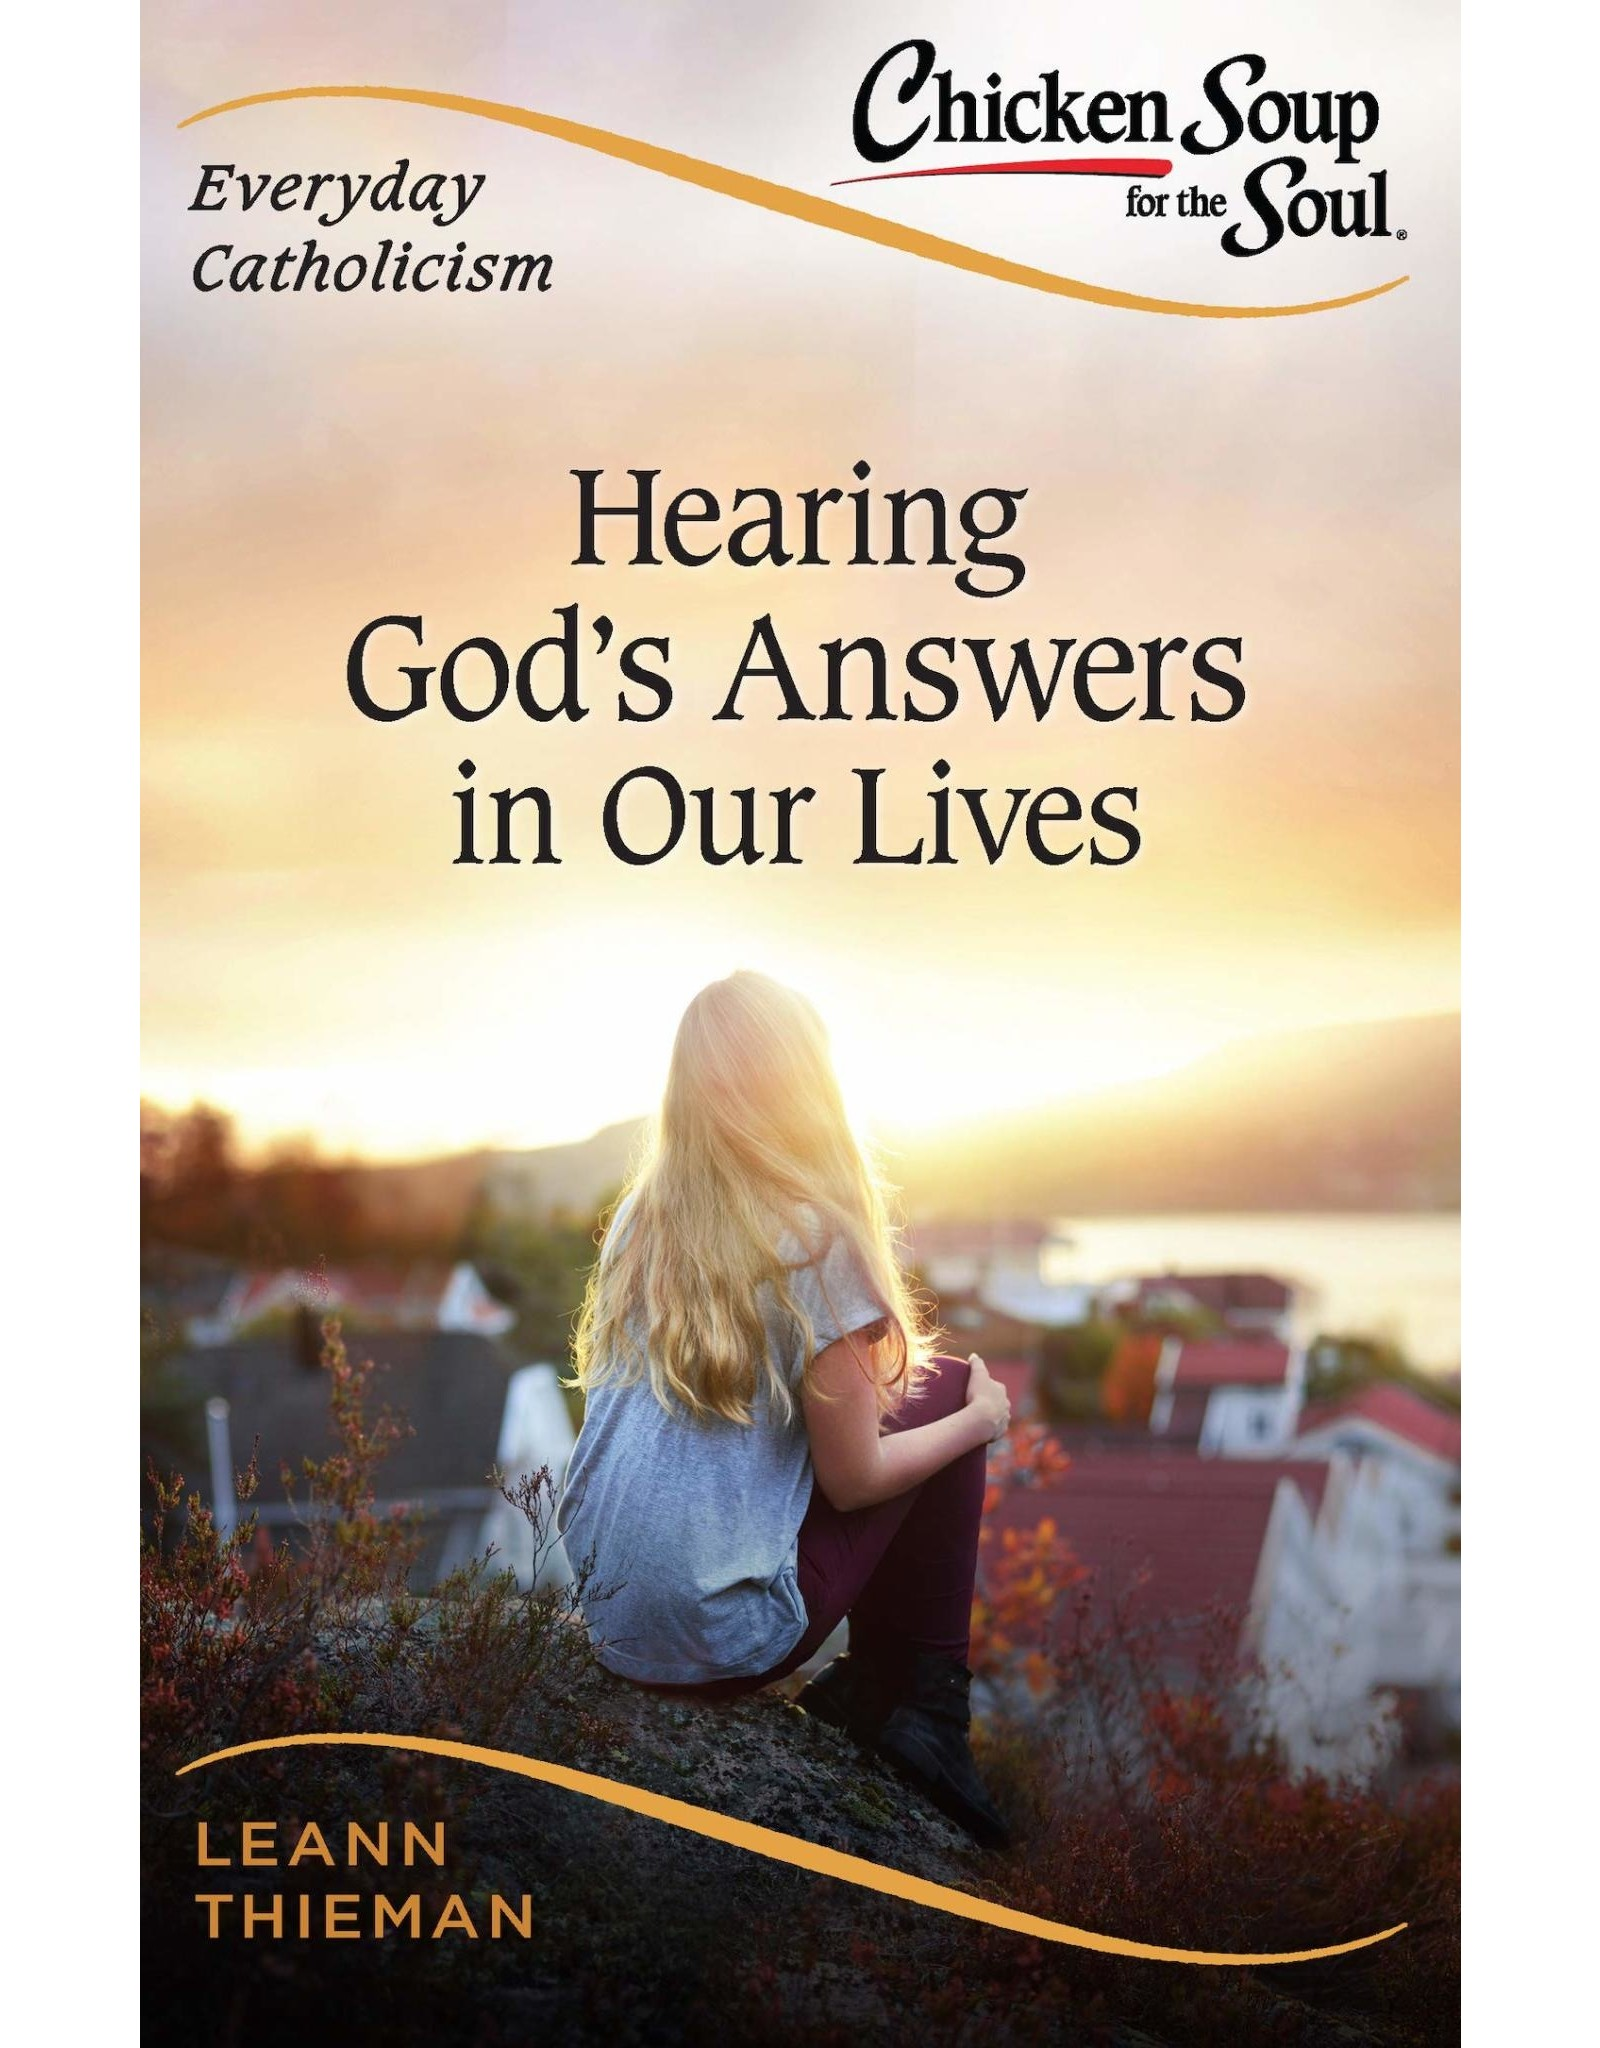 Everyday Catholicism: Hearing God's Answers in Our LIves